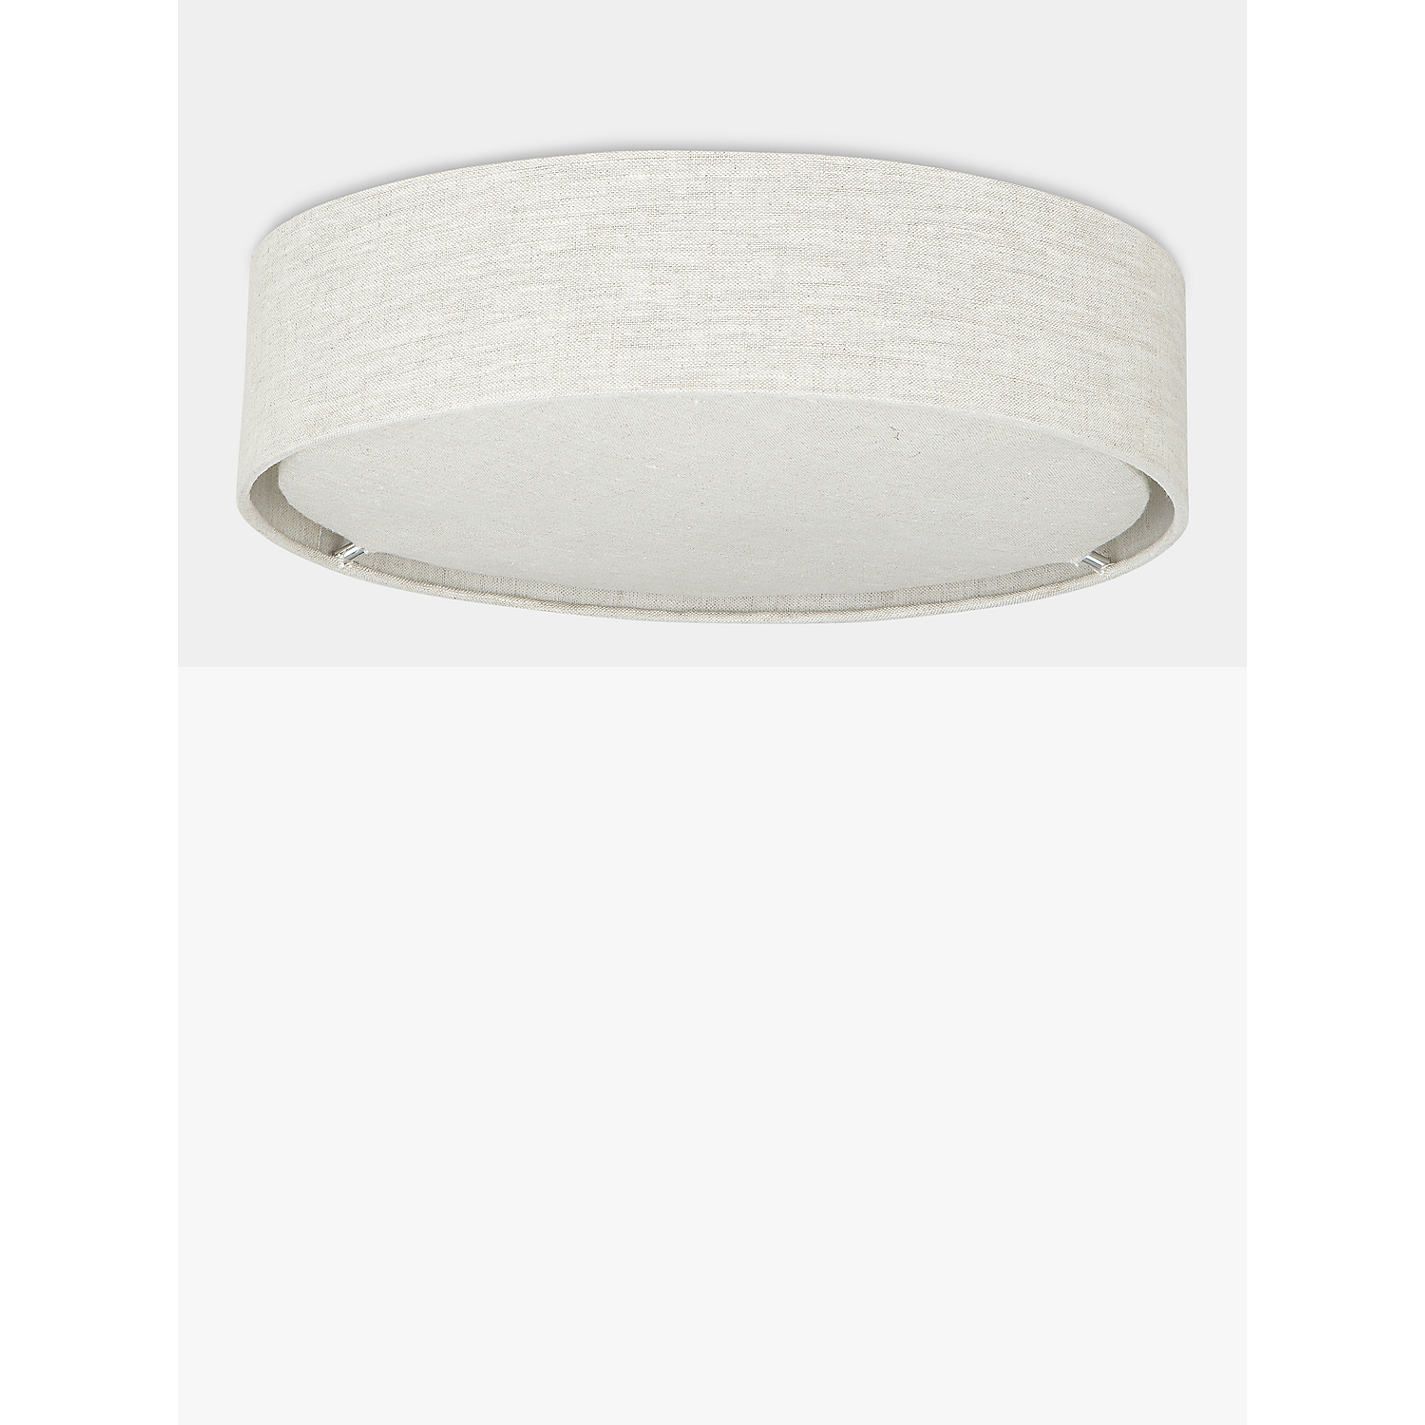 Buy john lewis samantha linen flush ceiling light john lewis buy john lewis samantha linen flush ceiling light online at johnlewis aloadofball Choice Image